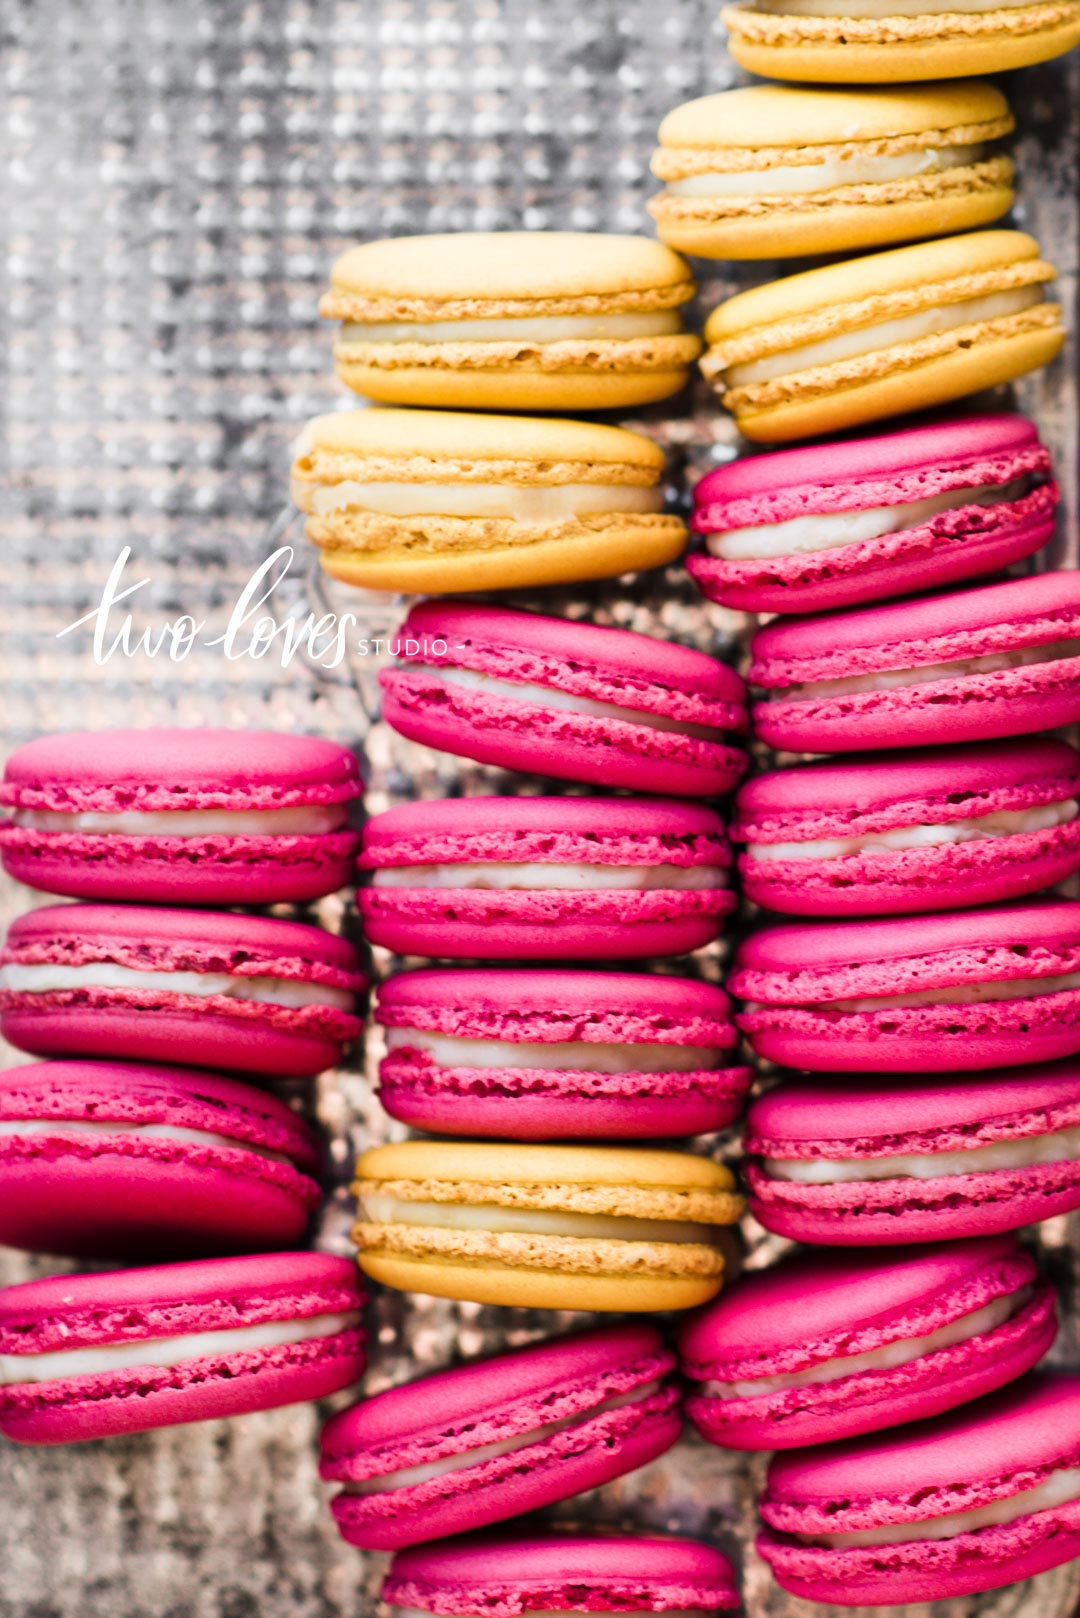 There are so many reasons why Lightroom food photography presets are great. But if you don't know how to use them, or simply buy them to save time, then they could be holding you back. Click to find out why.